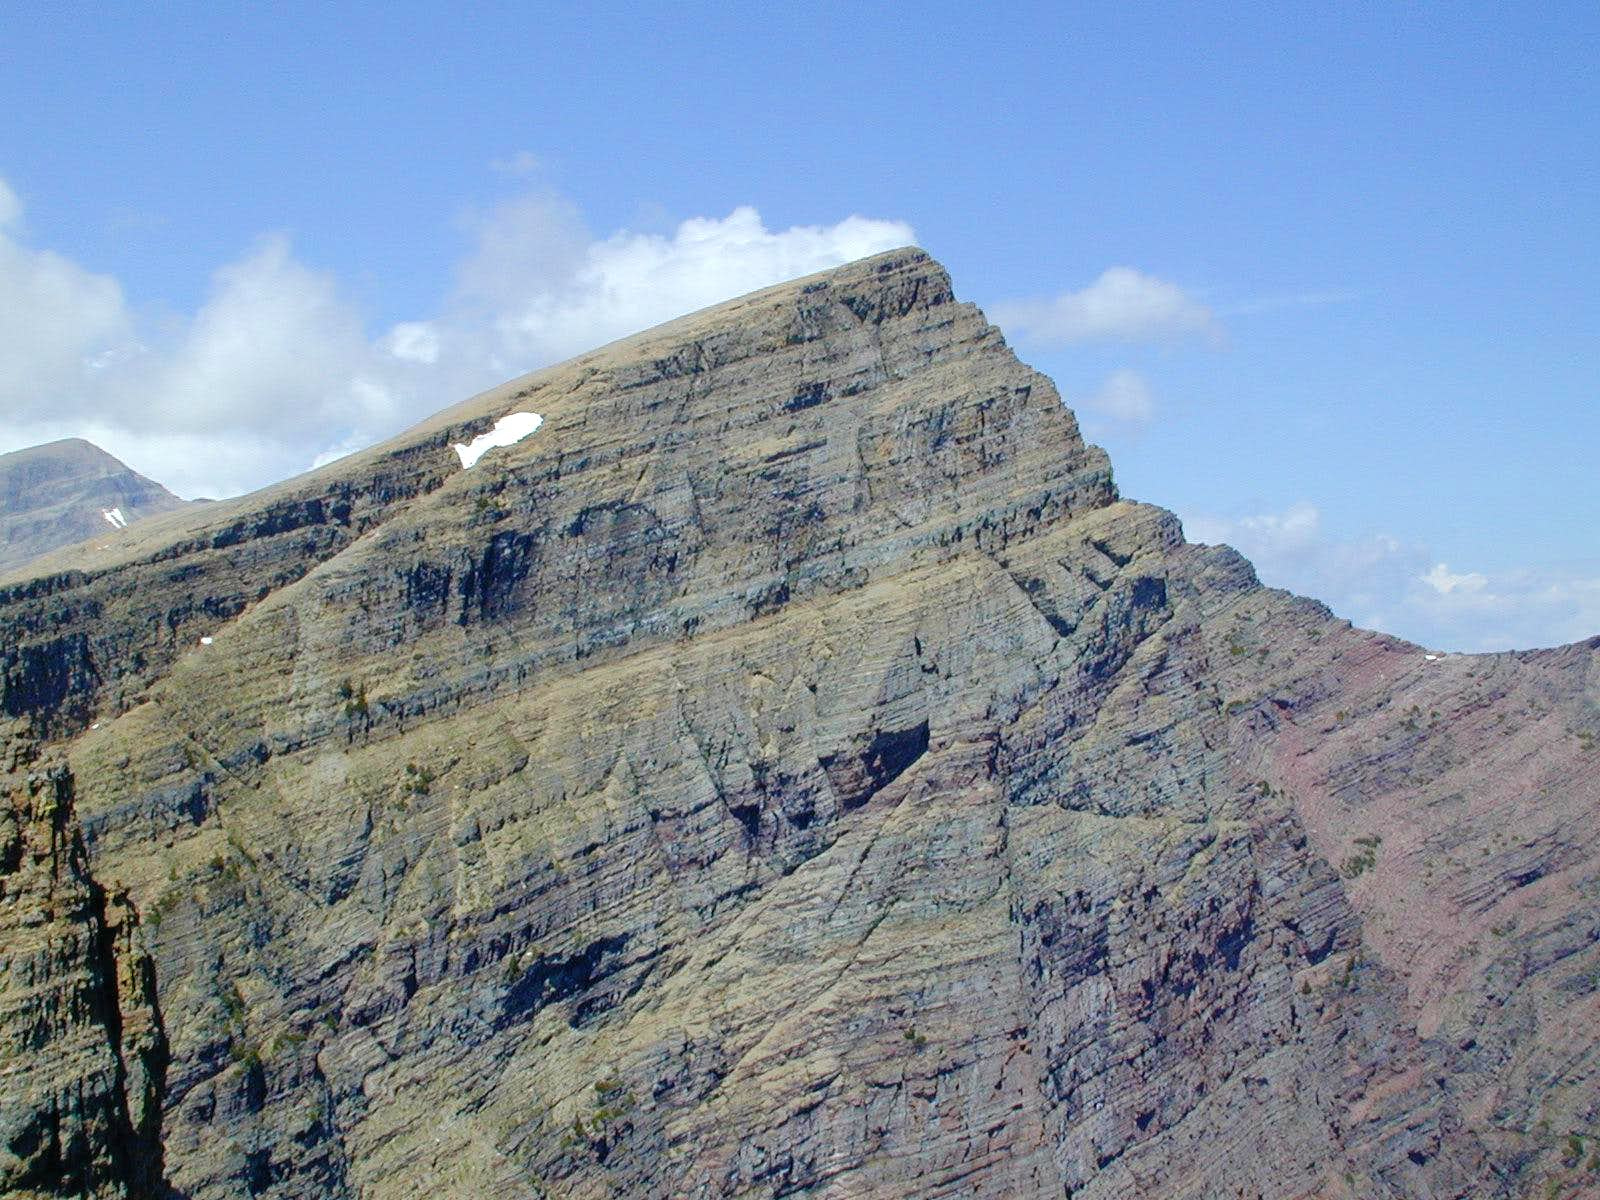 Goat Mountain